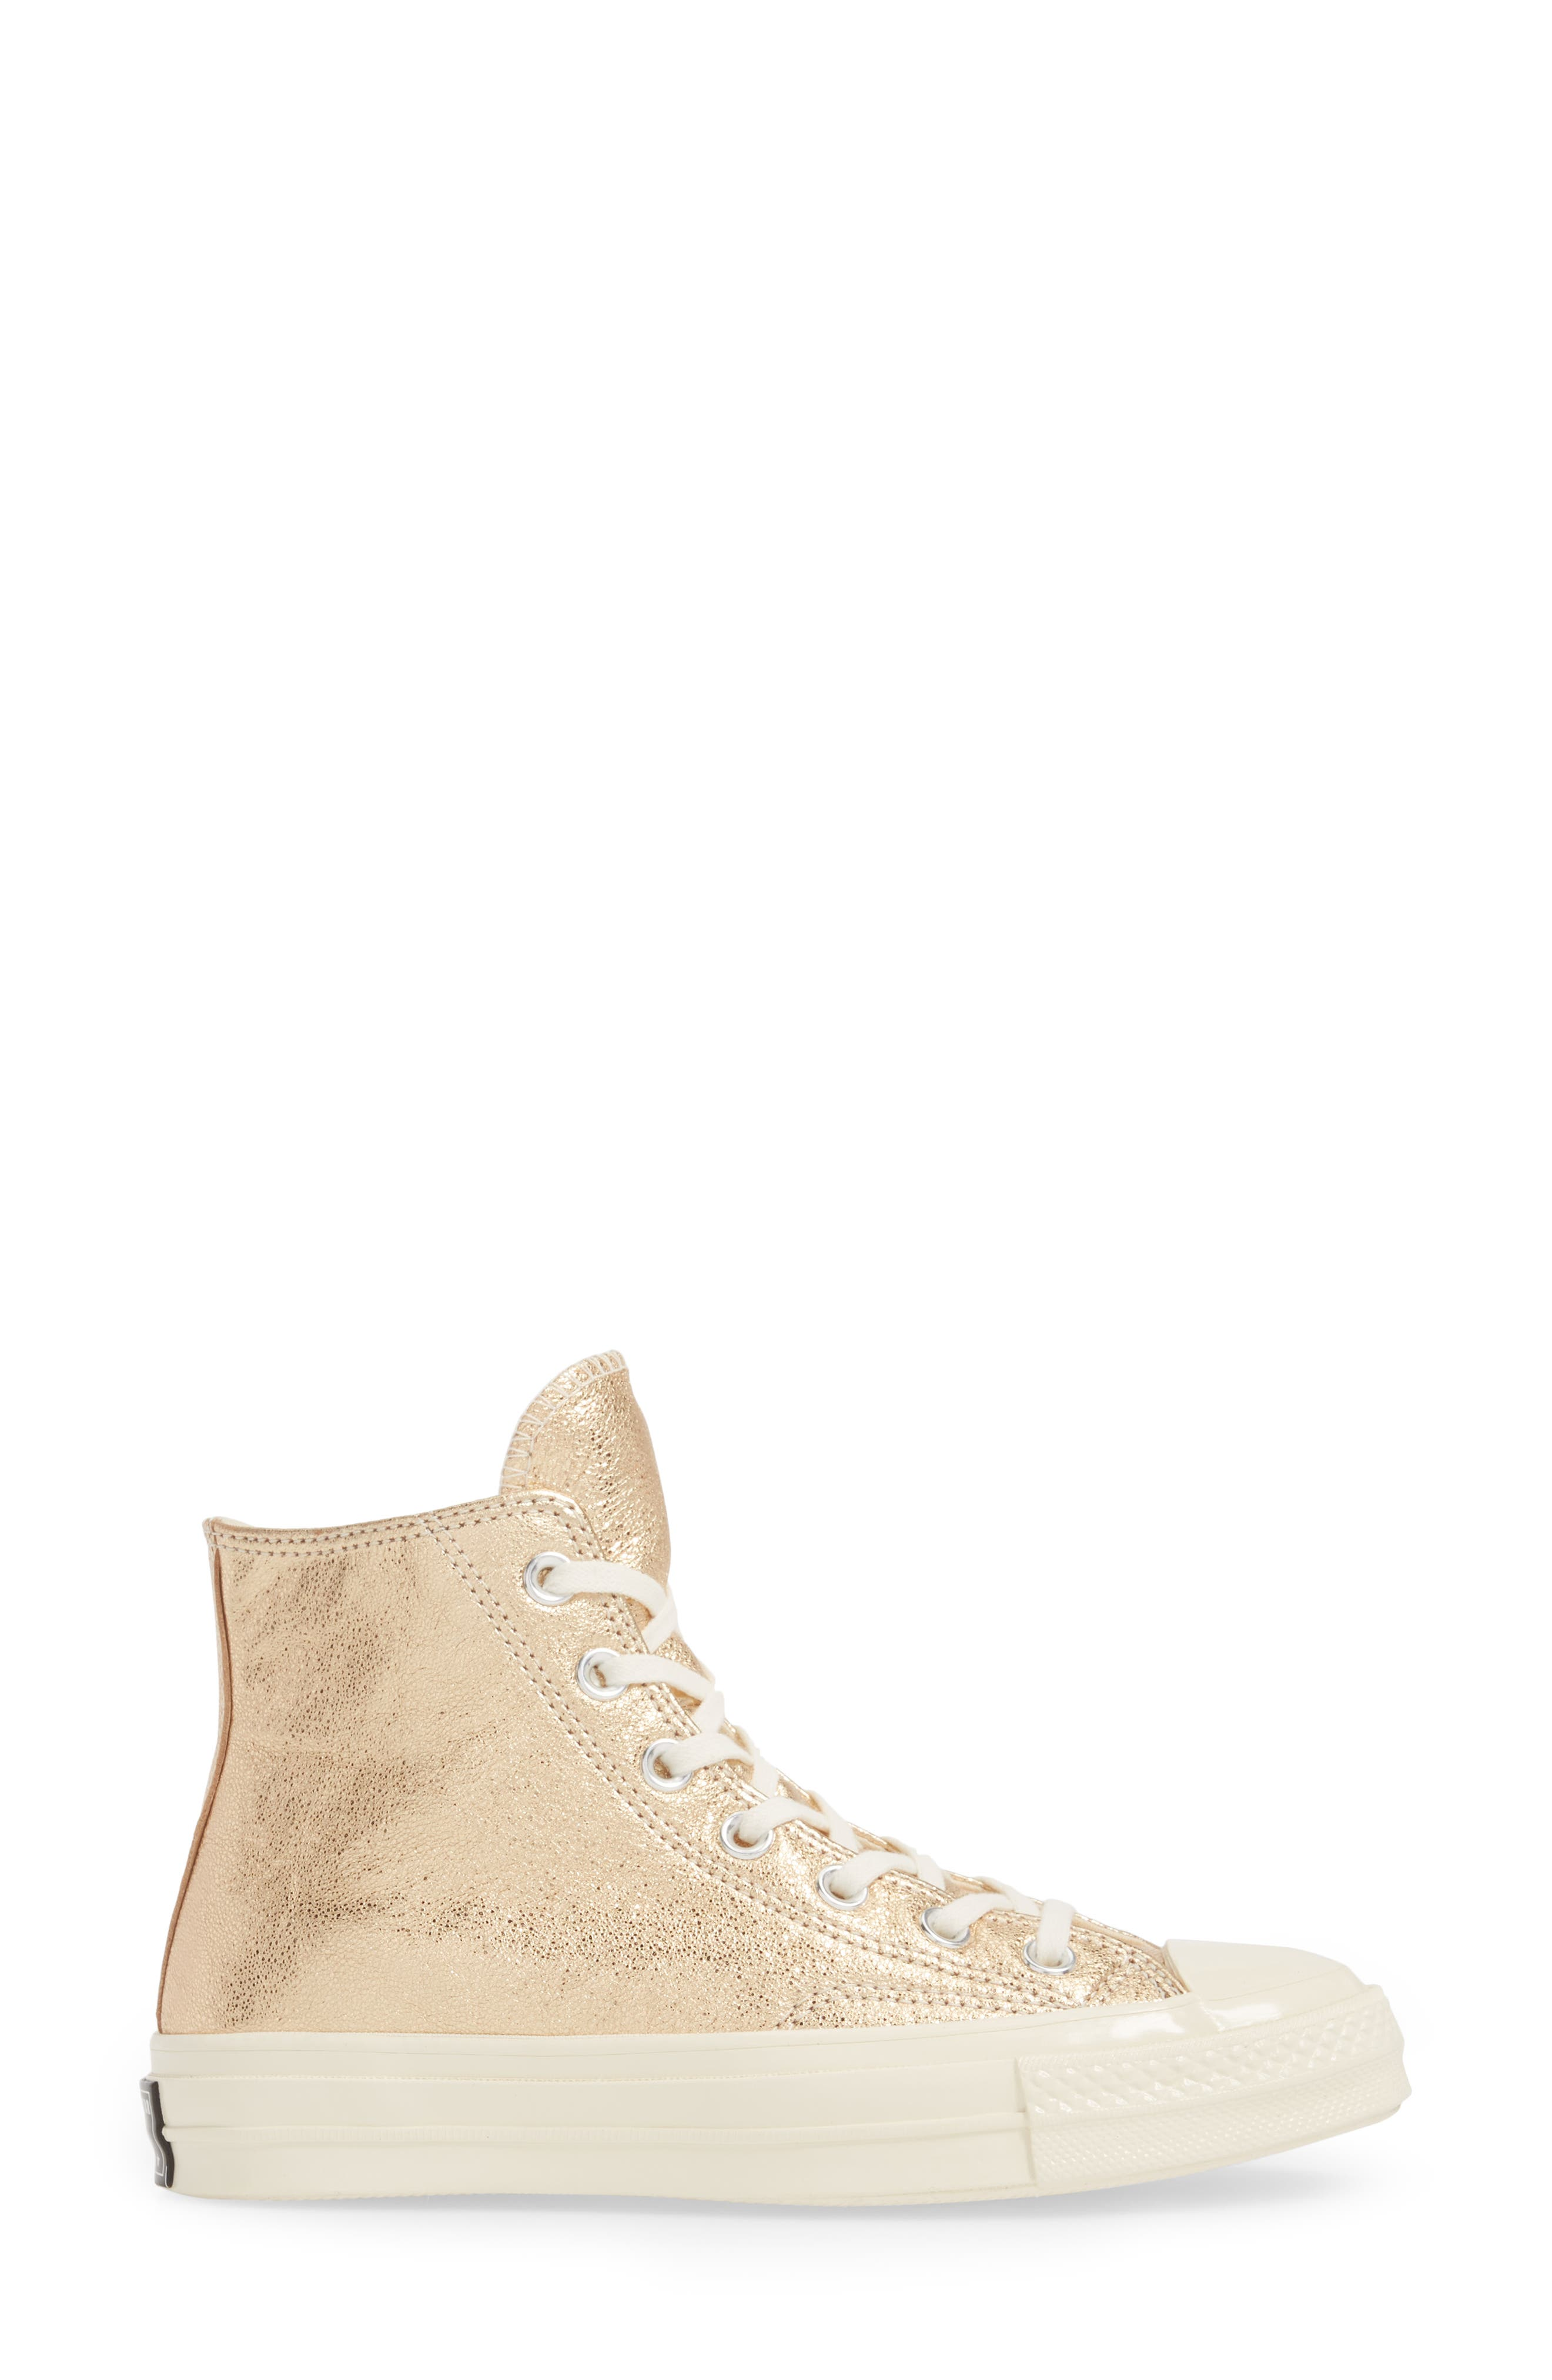 Chuck Taylor<sup>®</sup> All Star<sup>®</sup> Heavy Metal 70 High Top Sneaker,                             Alternate thumbnail 9, color,